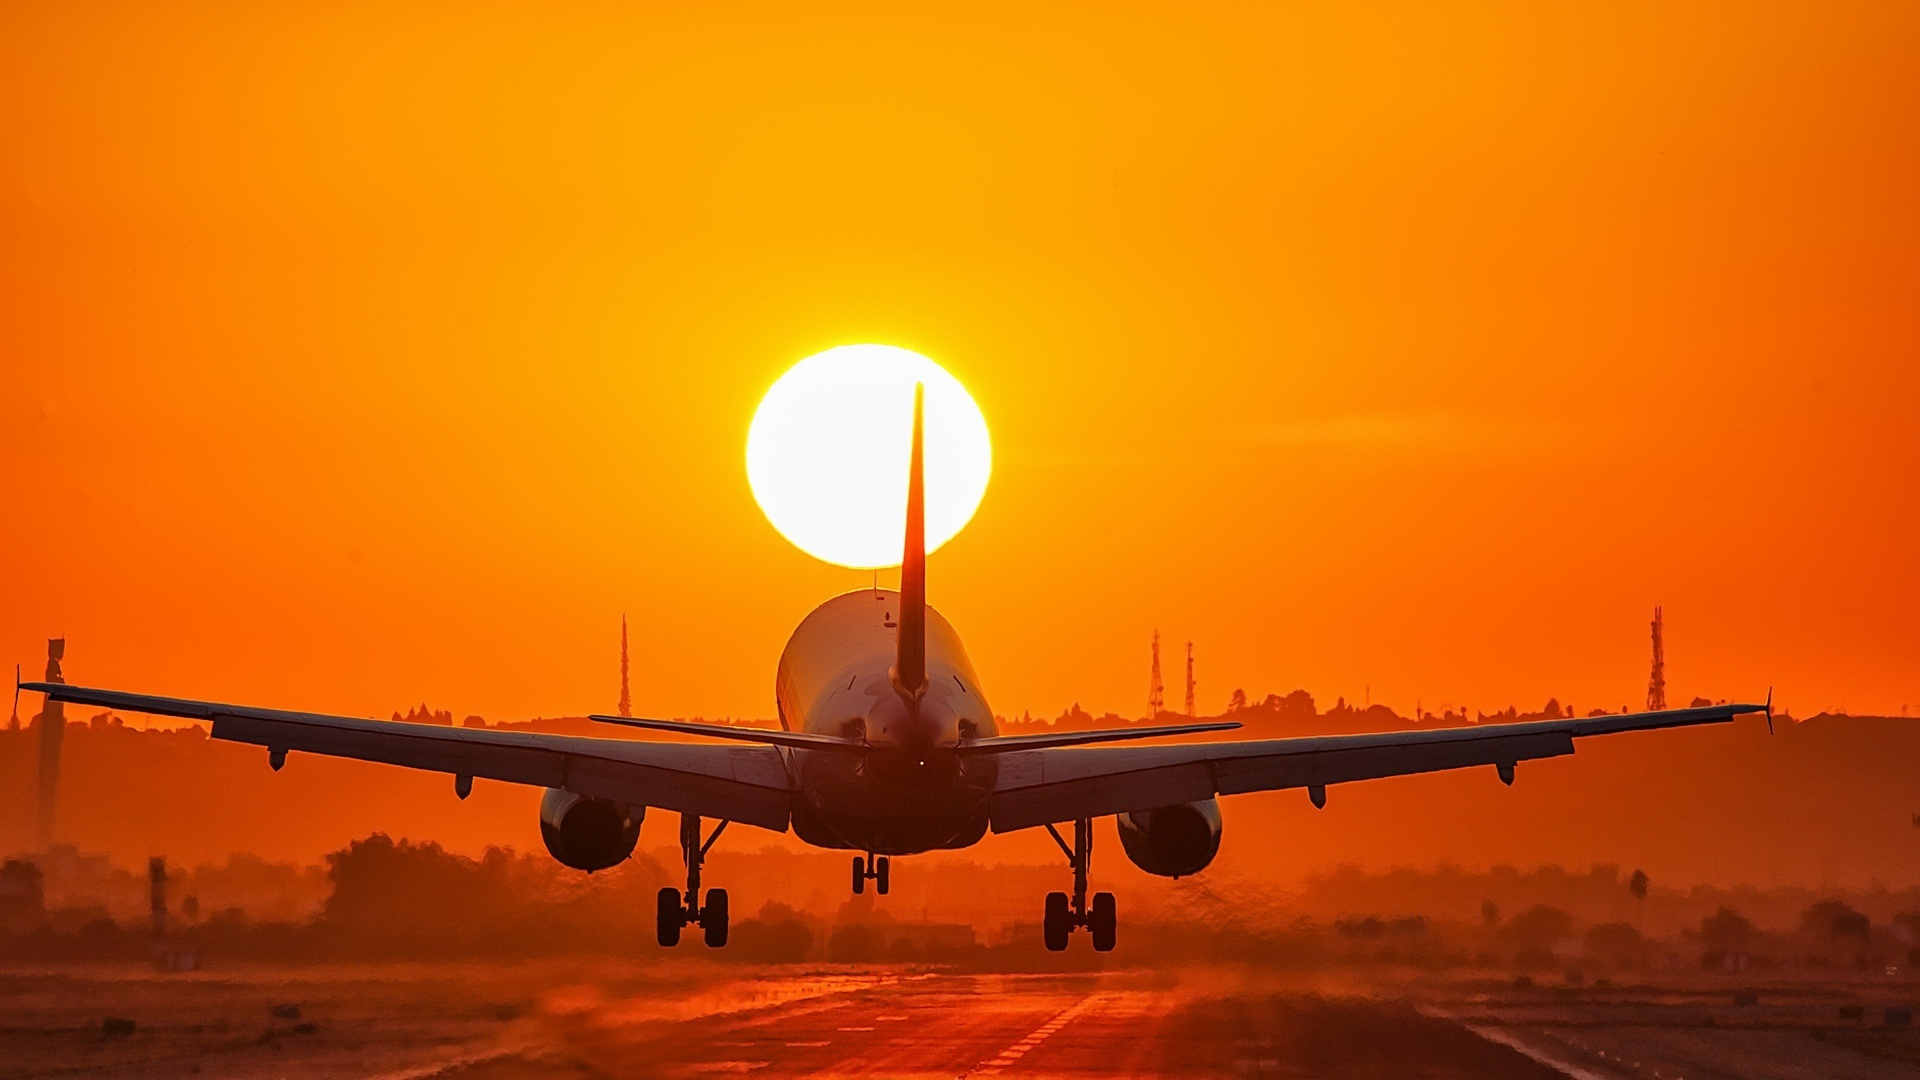 Airbus A350 Wallpapers Airbus Aircrafts Planes Wallpapers in jpg